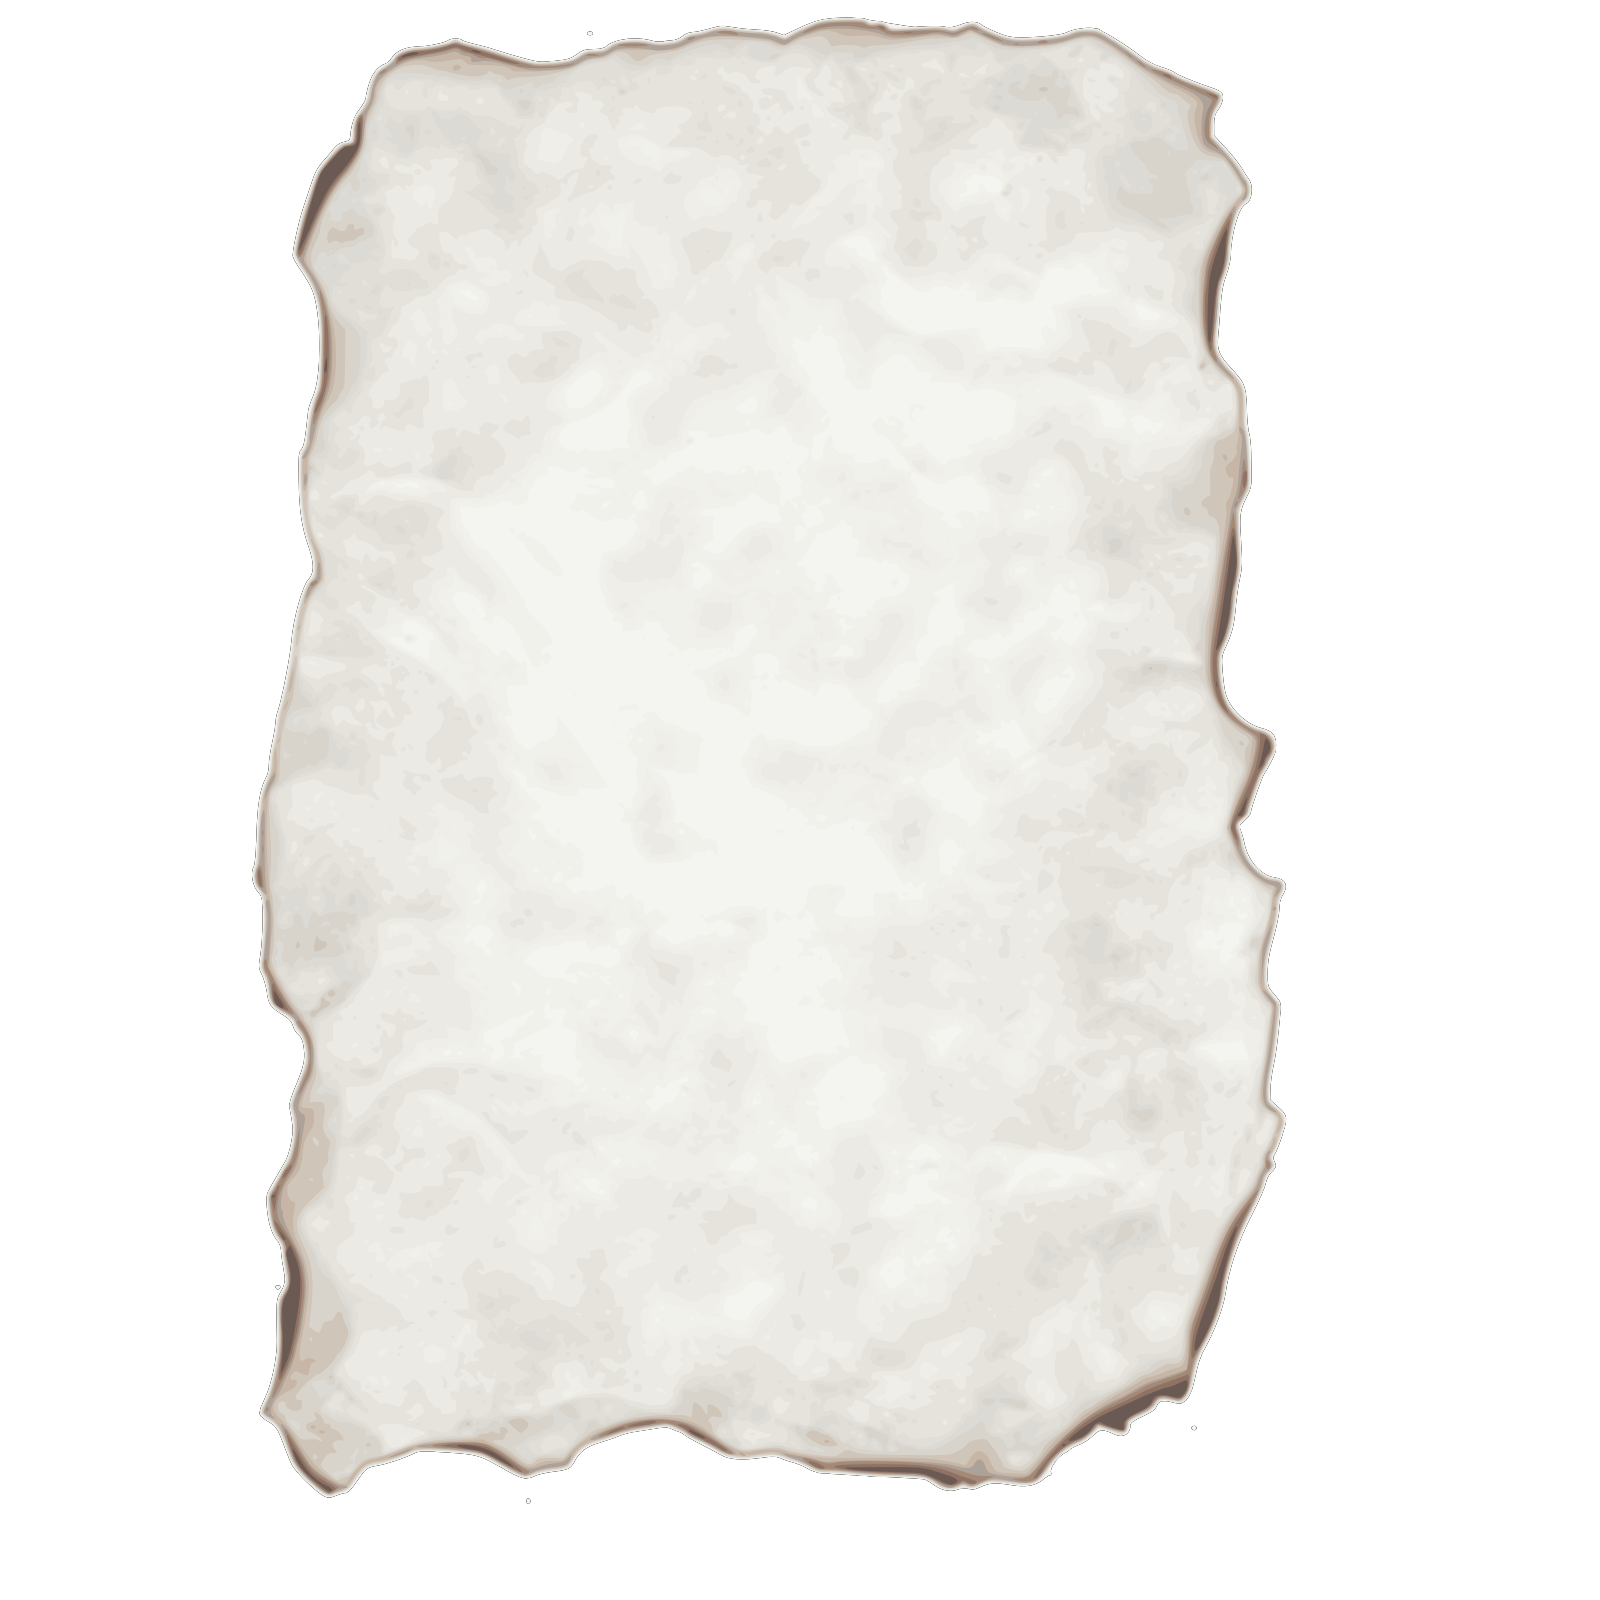 torn paper clipart png - Clip Art Library